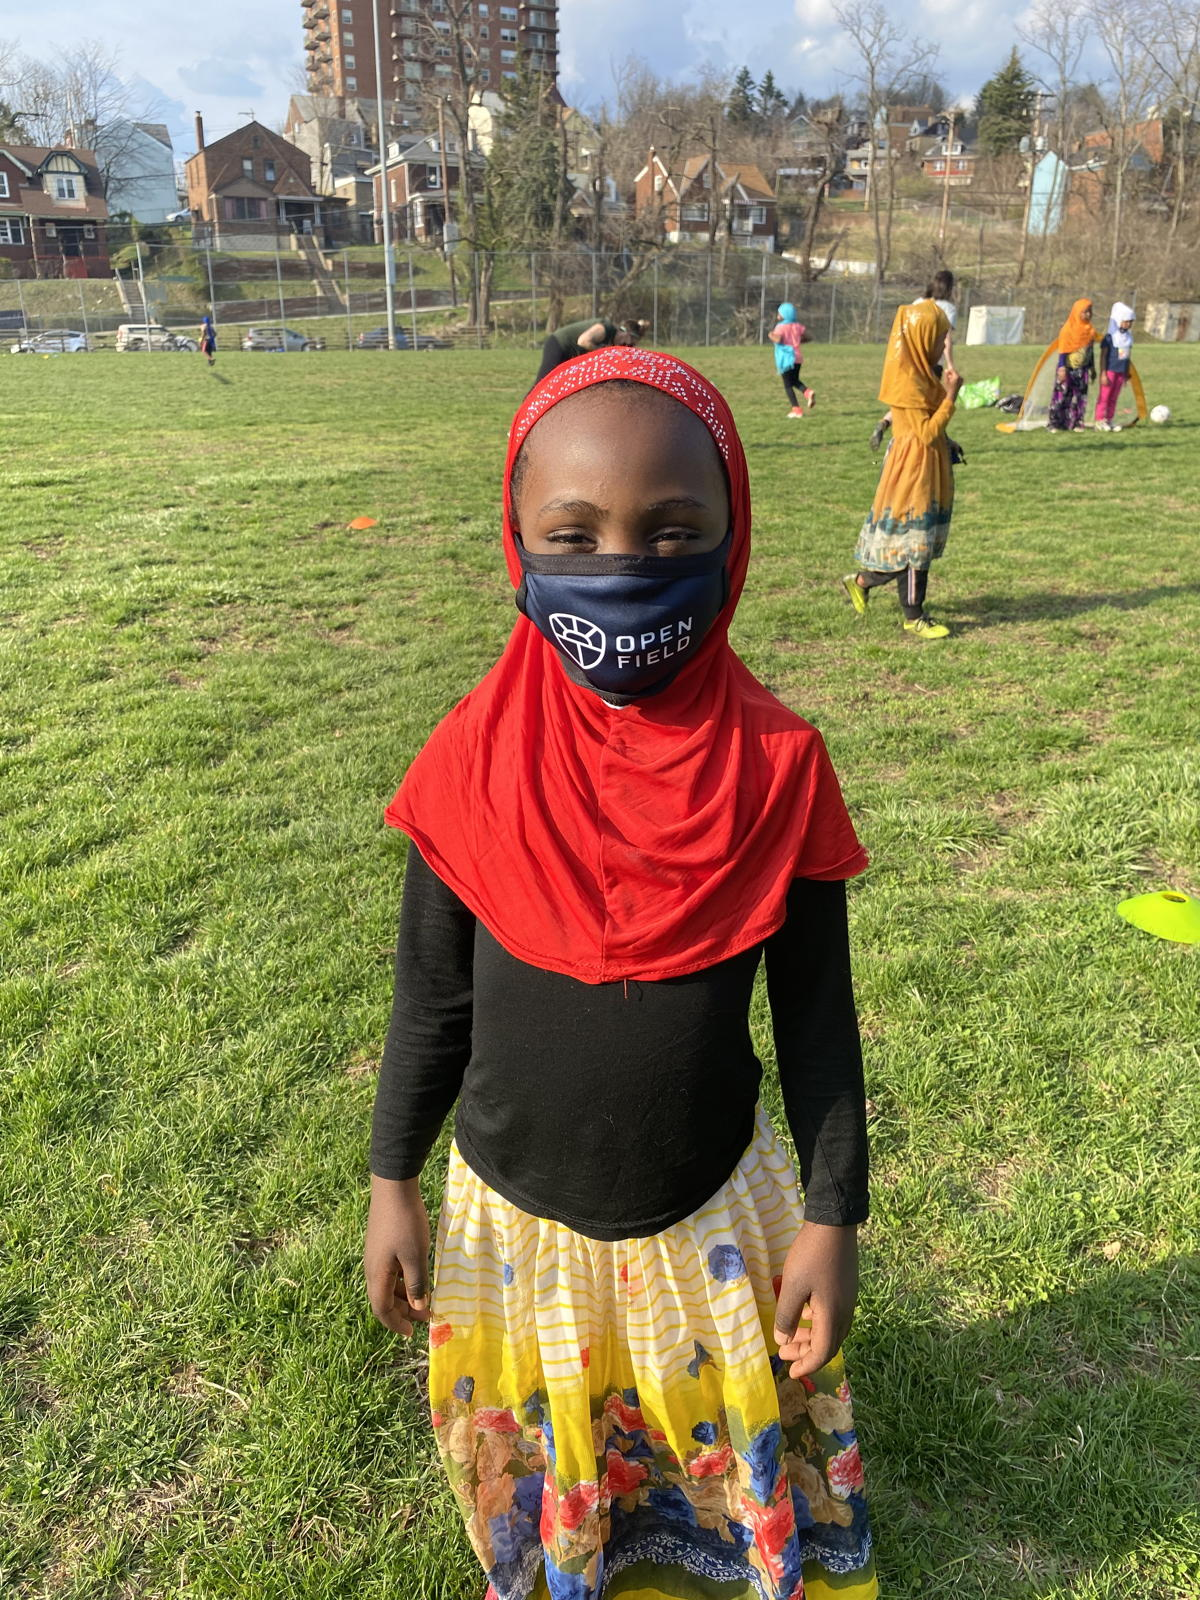 A youngster in a facial covering poses for a photo during one of Open Field